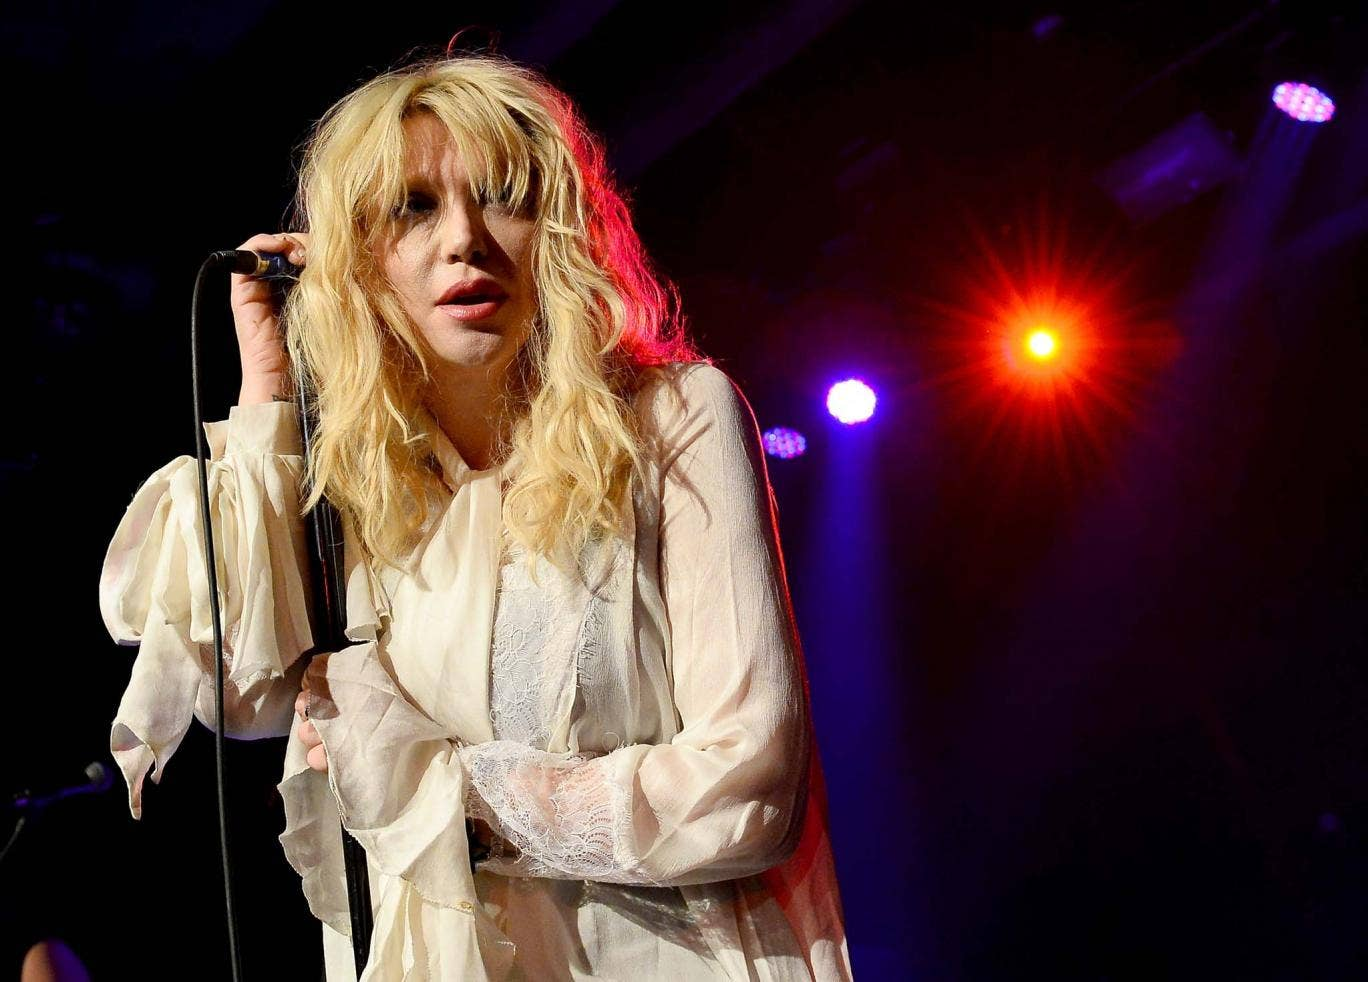 Courtney Love performs on stage inside the Hard Rock Hotel & Casino